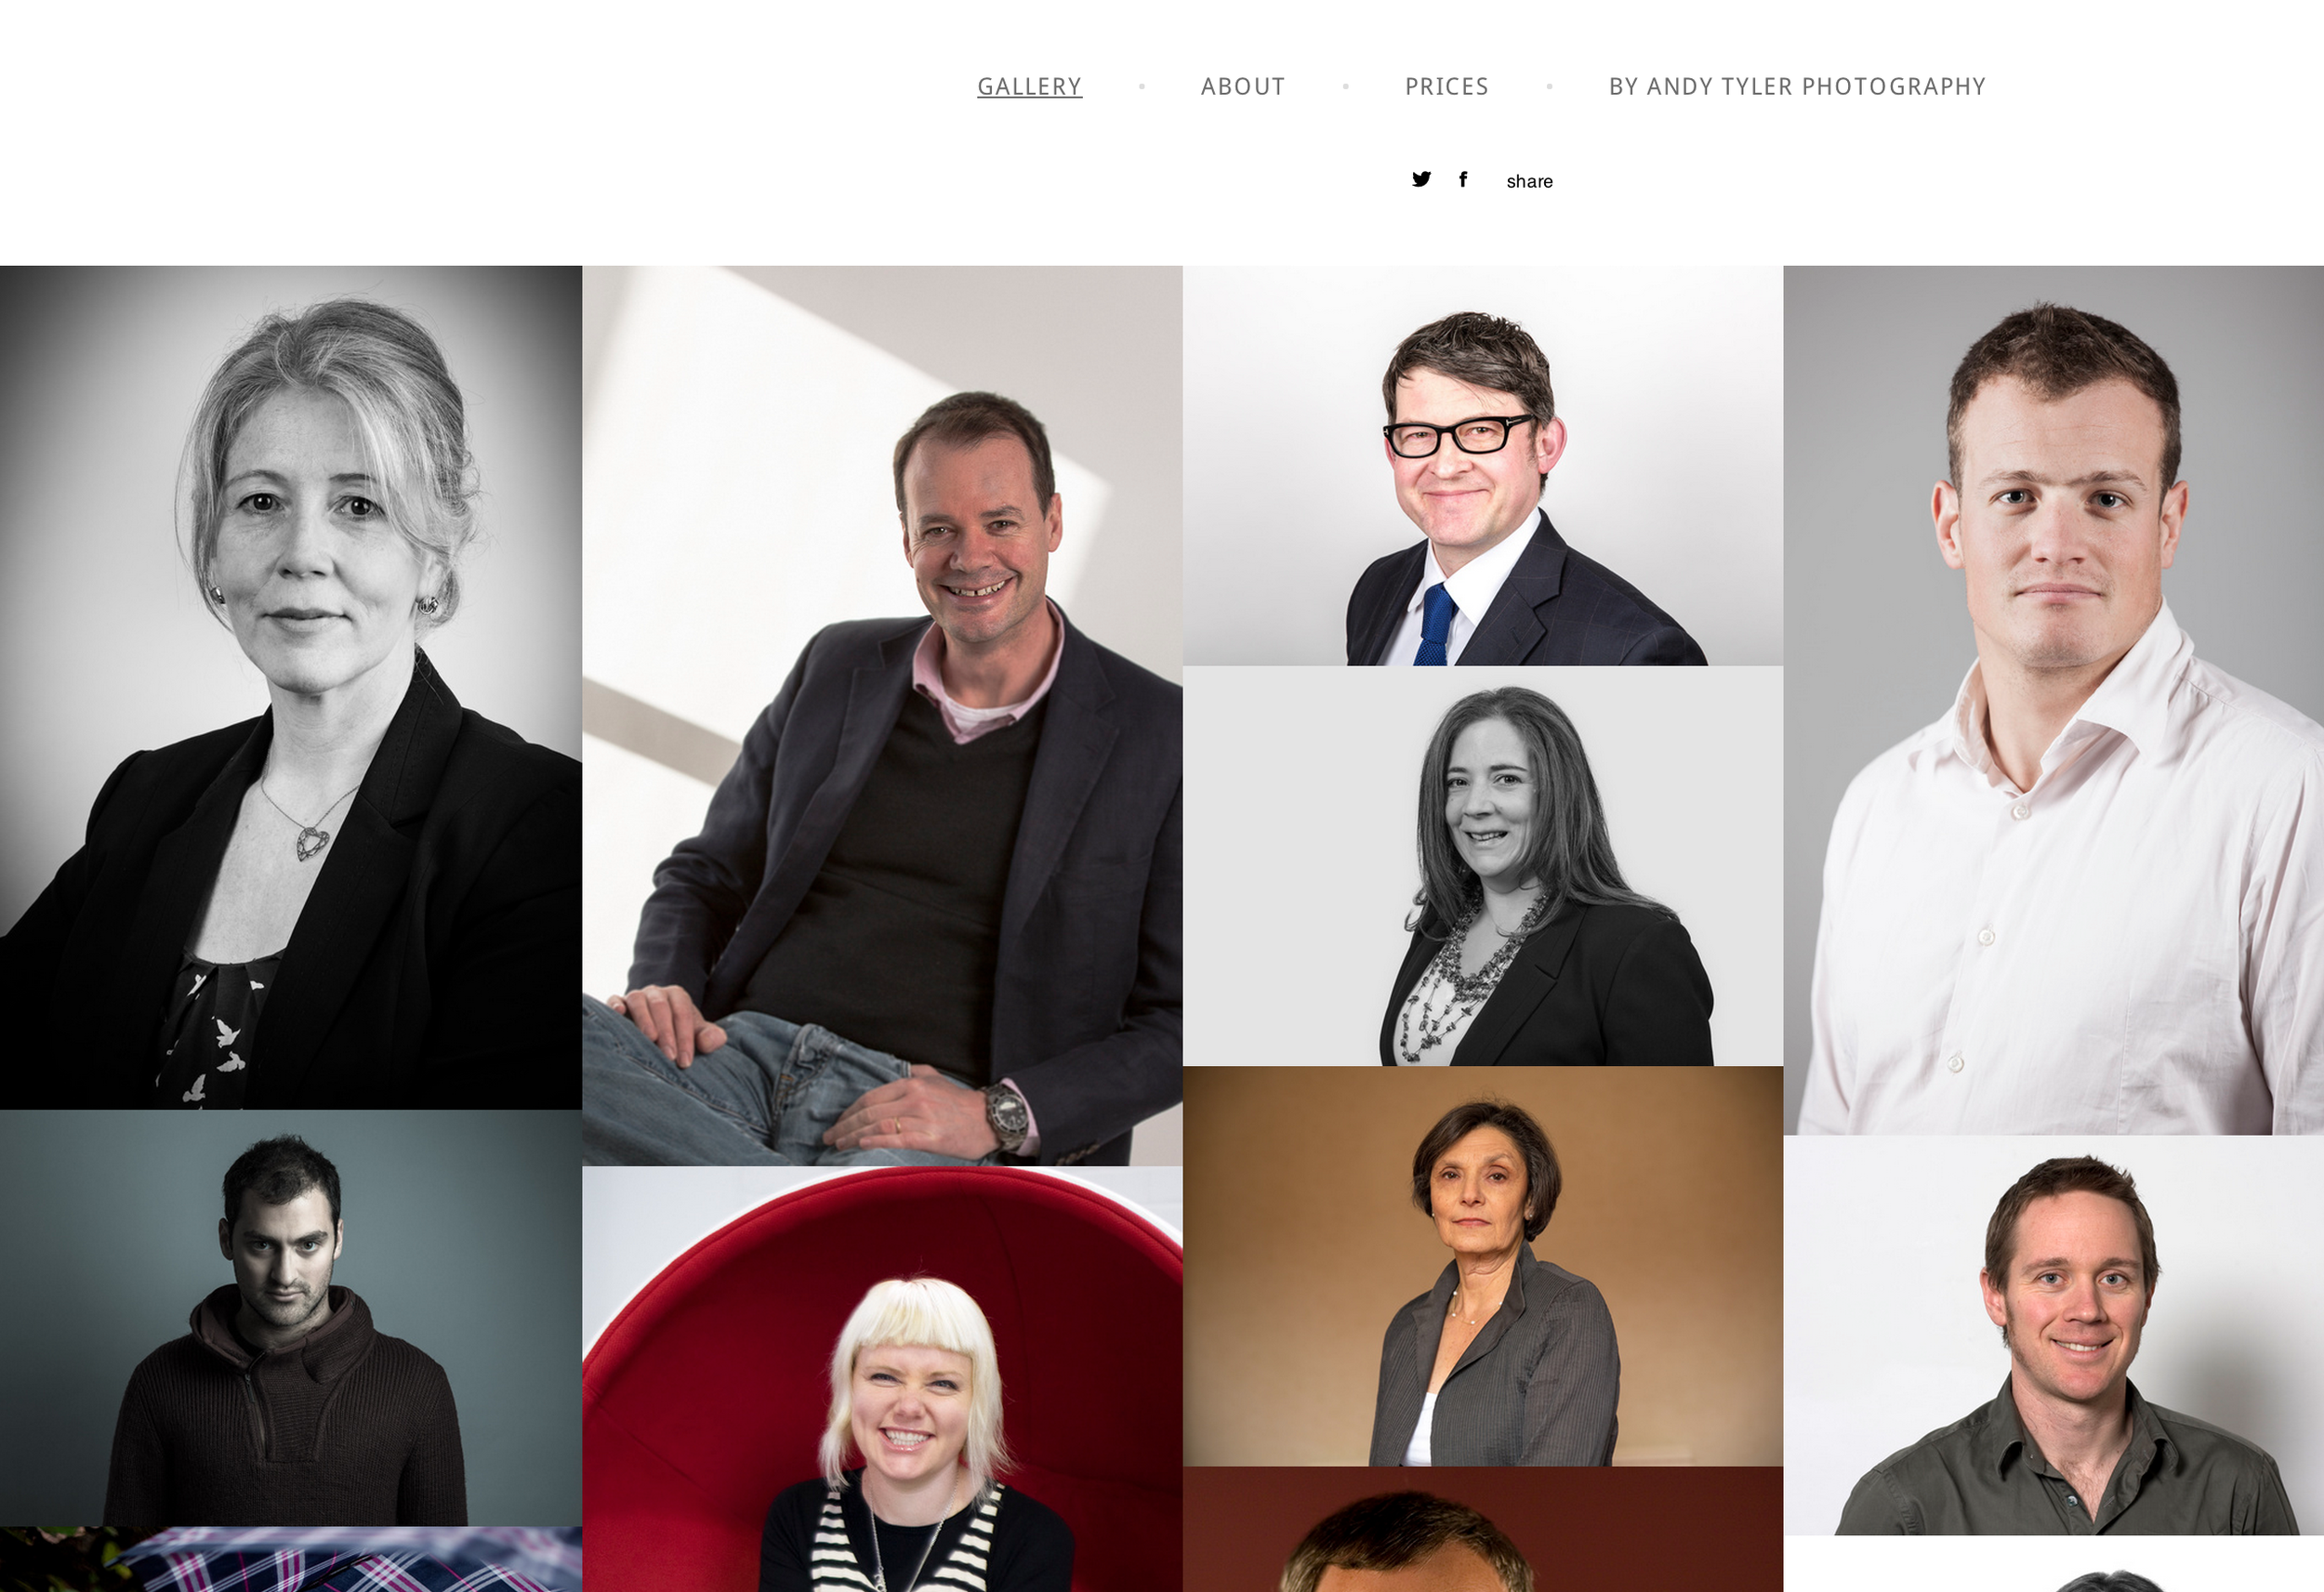 New headshots website and service launching soon